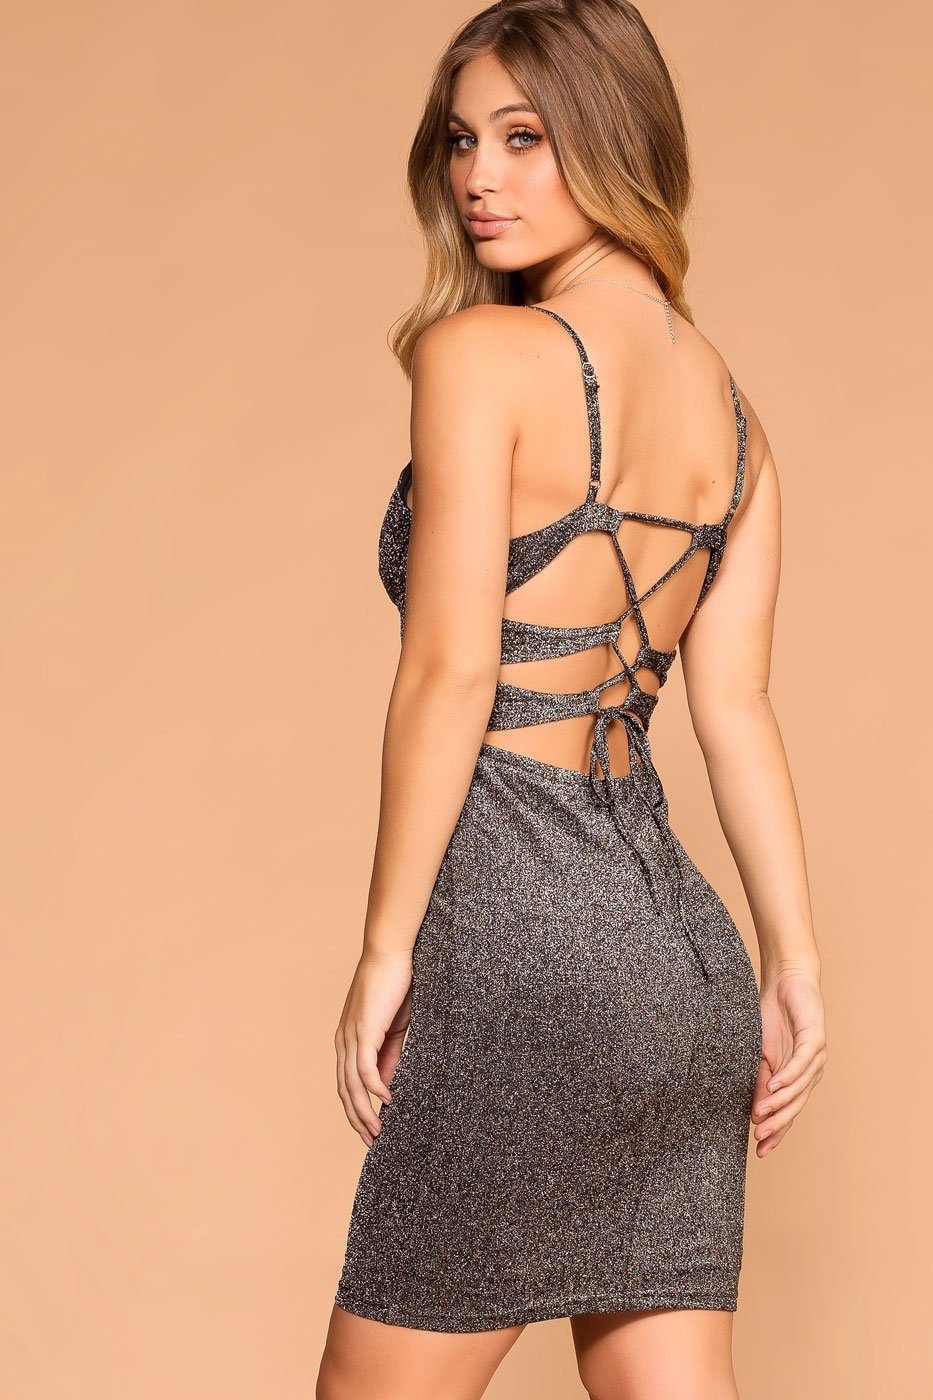 Silver | Bodycon Dress | Strappy | Lace up back | Womens | Priceless